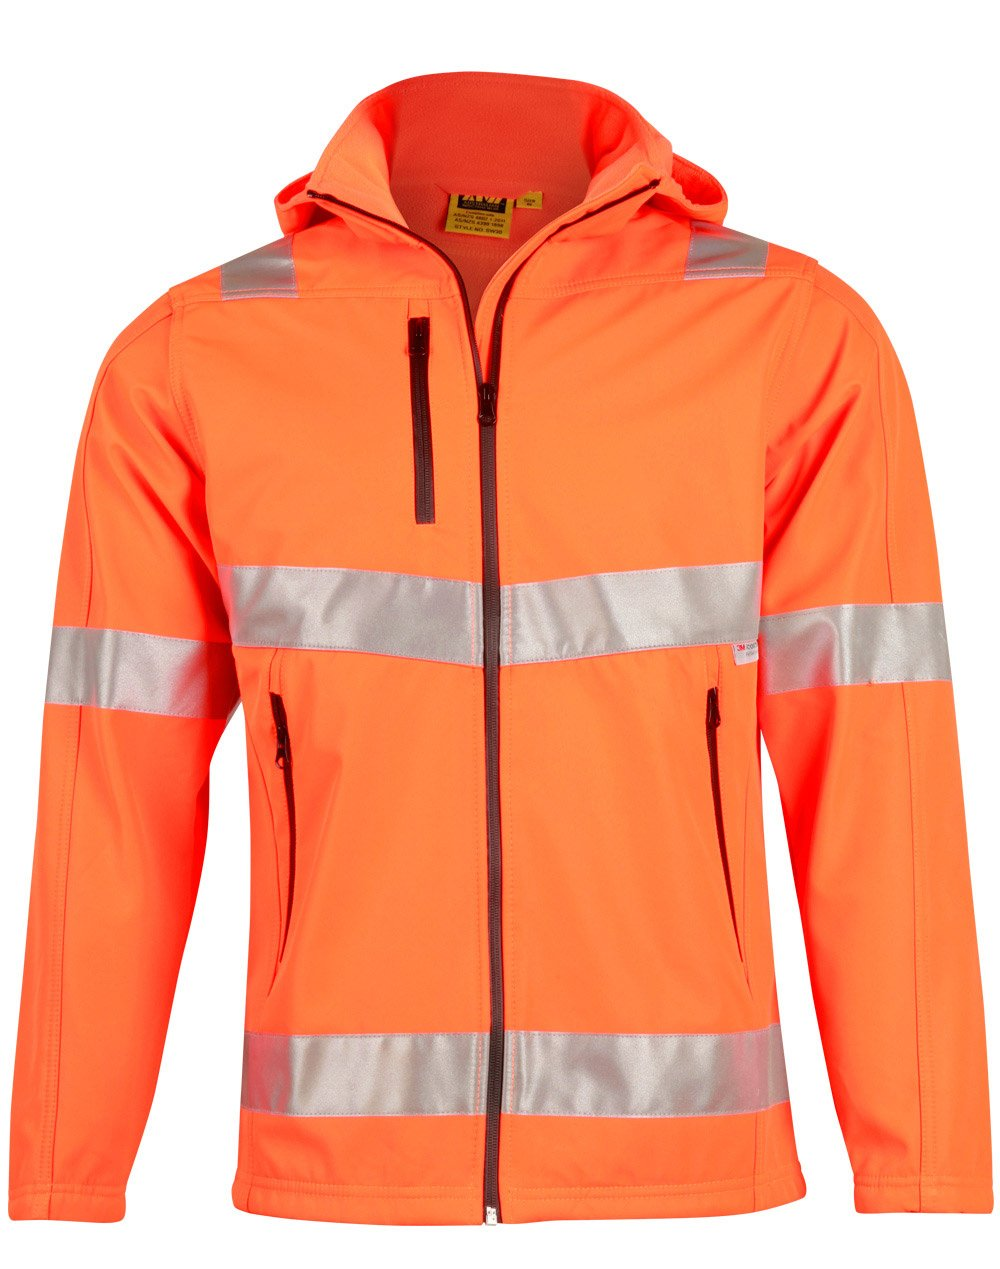 Hi-Vis Safety Jacket - Unisex